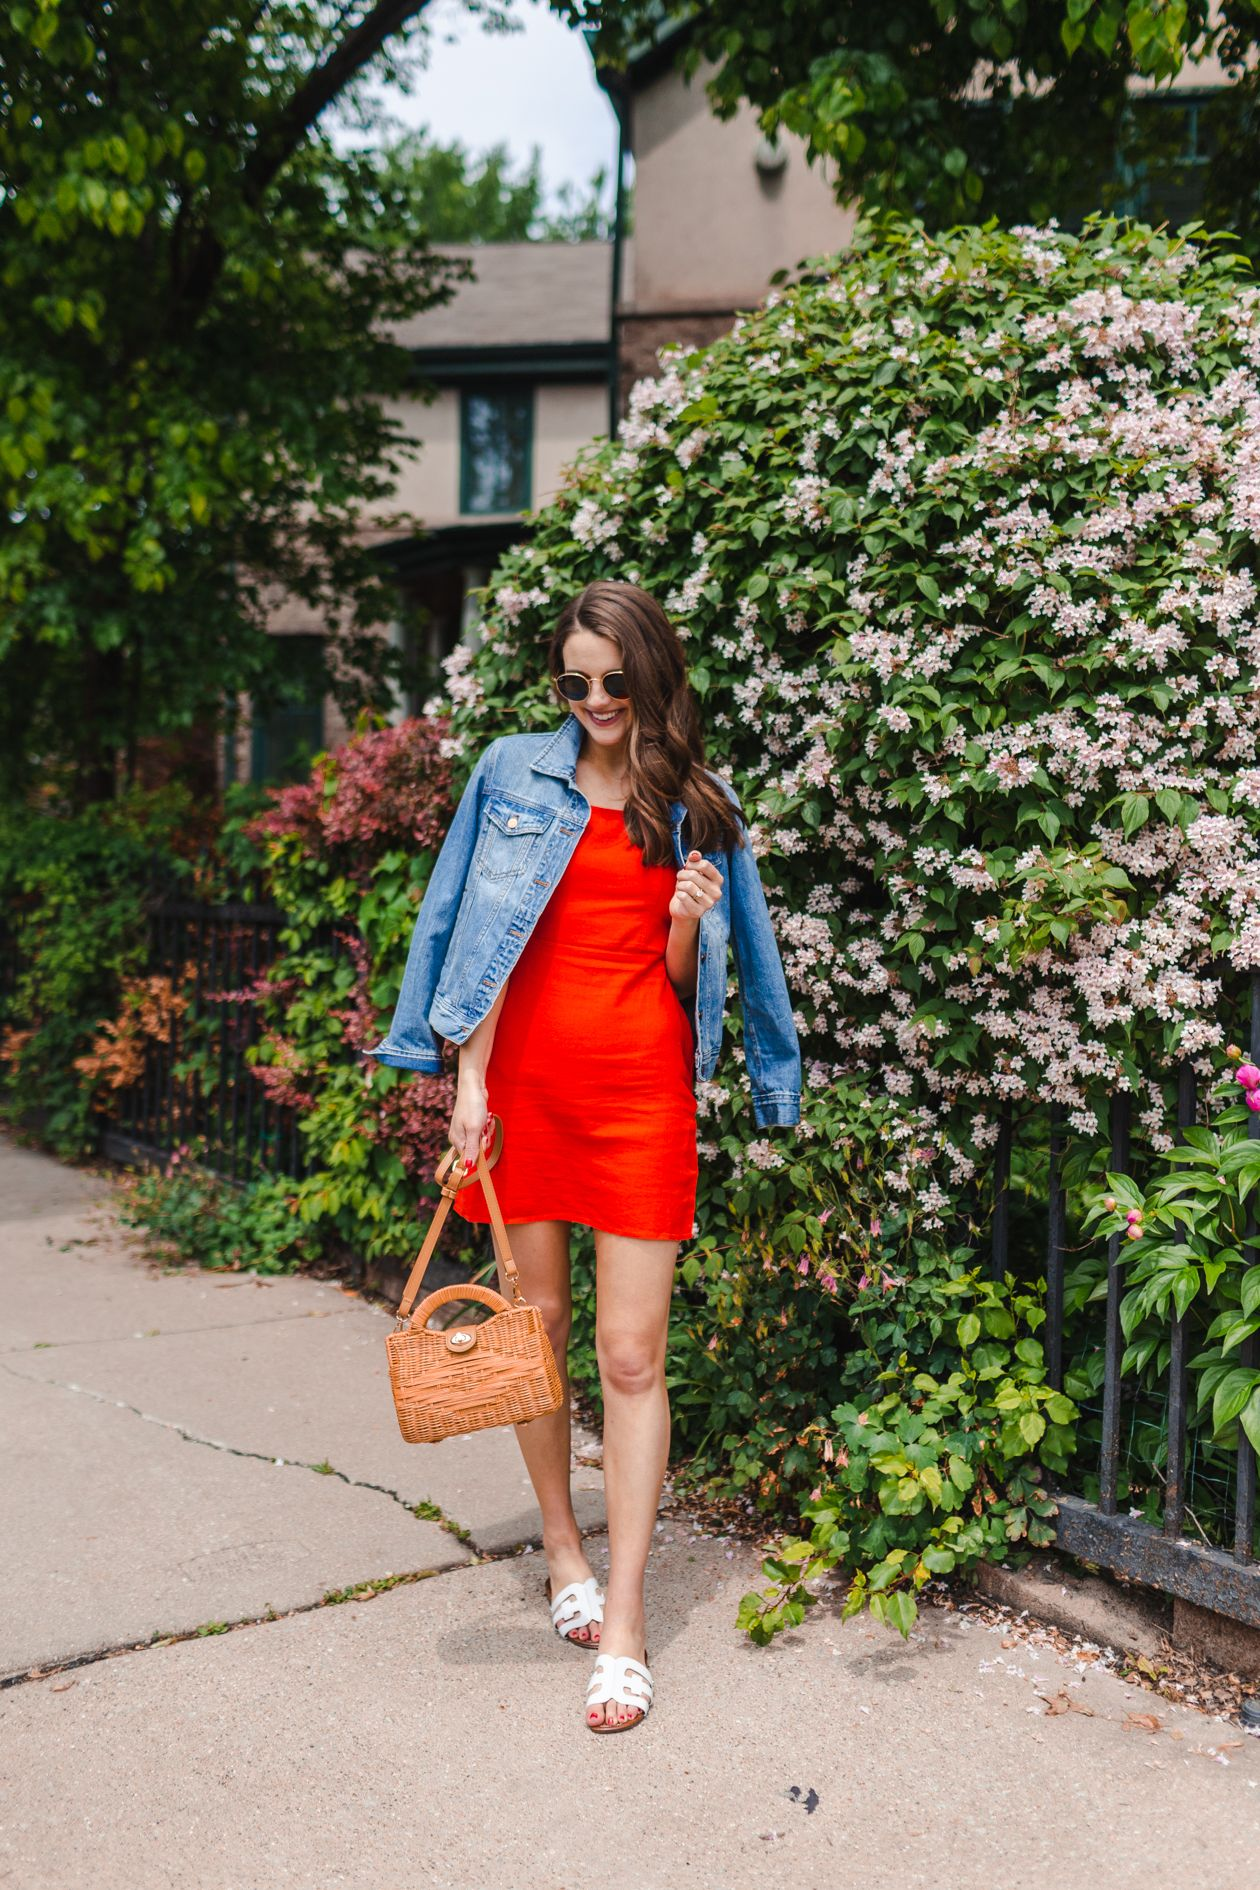 How To Style A Little Red Dress 3 Ways For Summer Little Red Dress Red Summer Dress Outfit Red Summer Dresses [ 1890 x 1260 Pixel ]